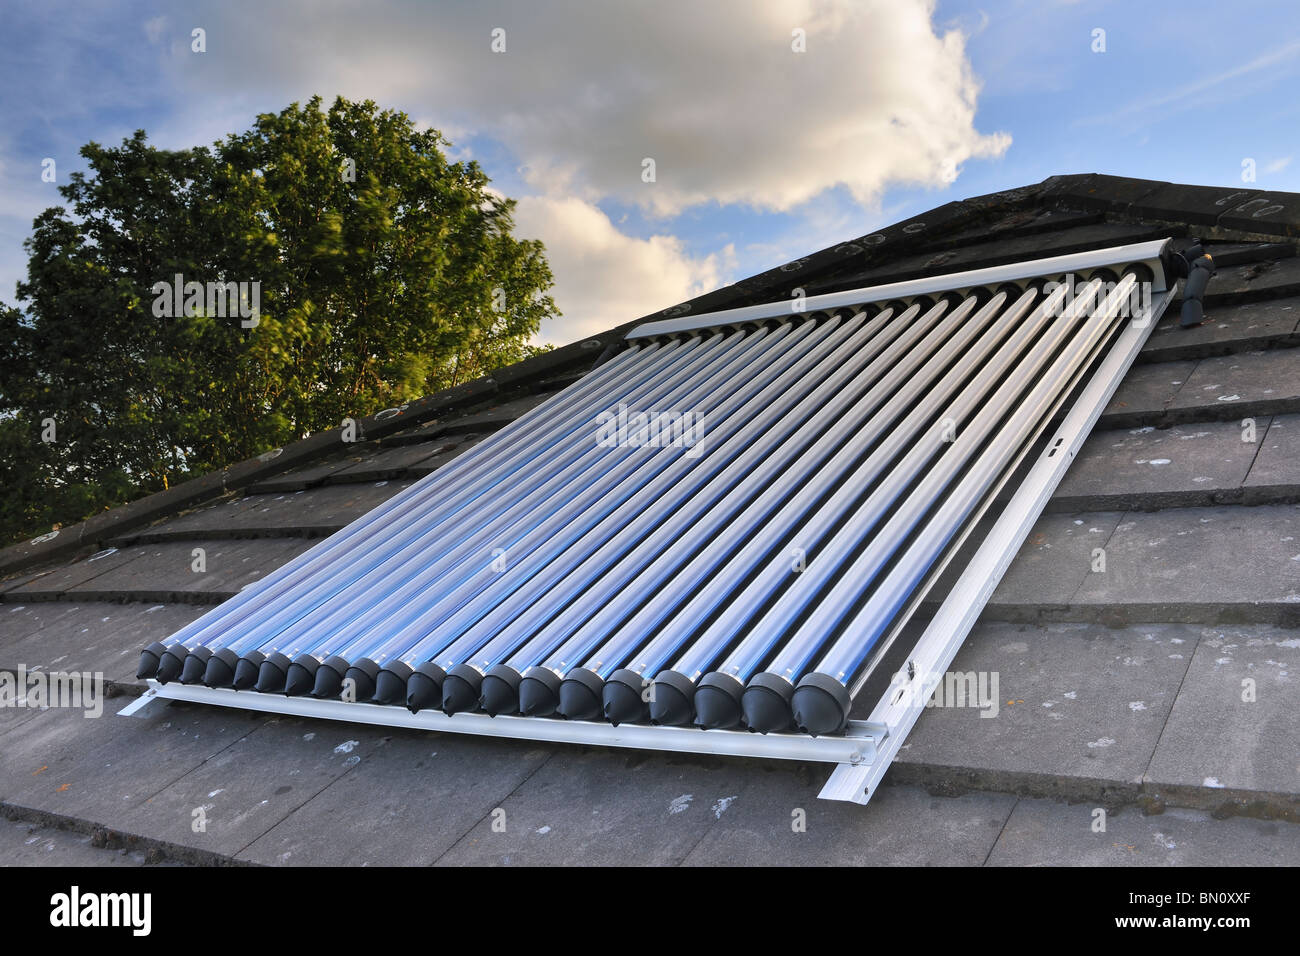 Solar Power. Solar vacuum/evacuated tubes on a domestic house roof in the UK - Stock Image